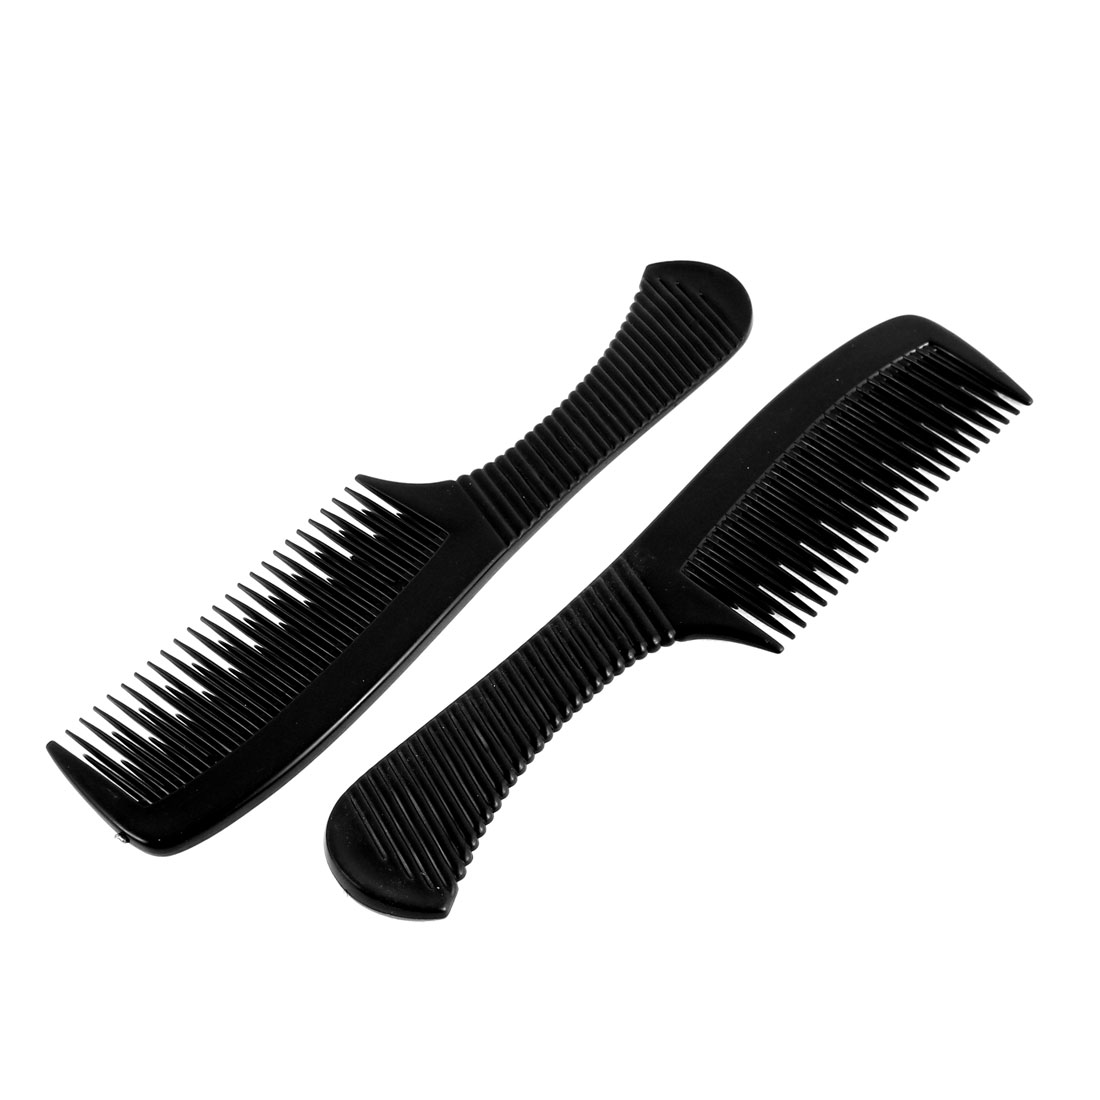 Household Salon Hairdressing Black Plastic Hair Comb 2 Pcs